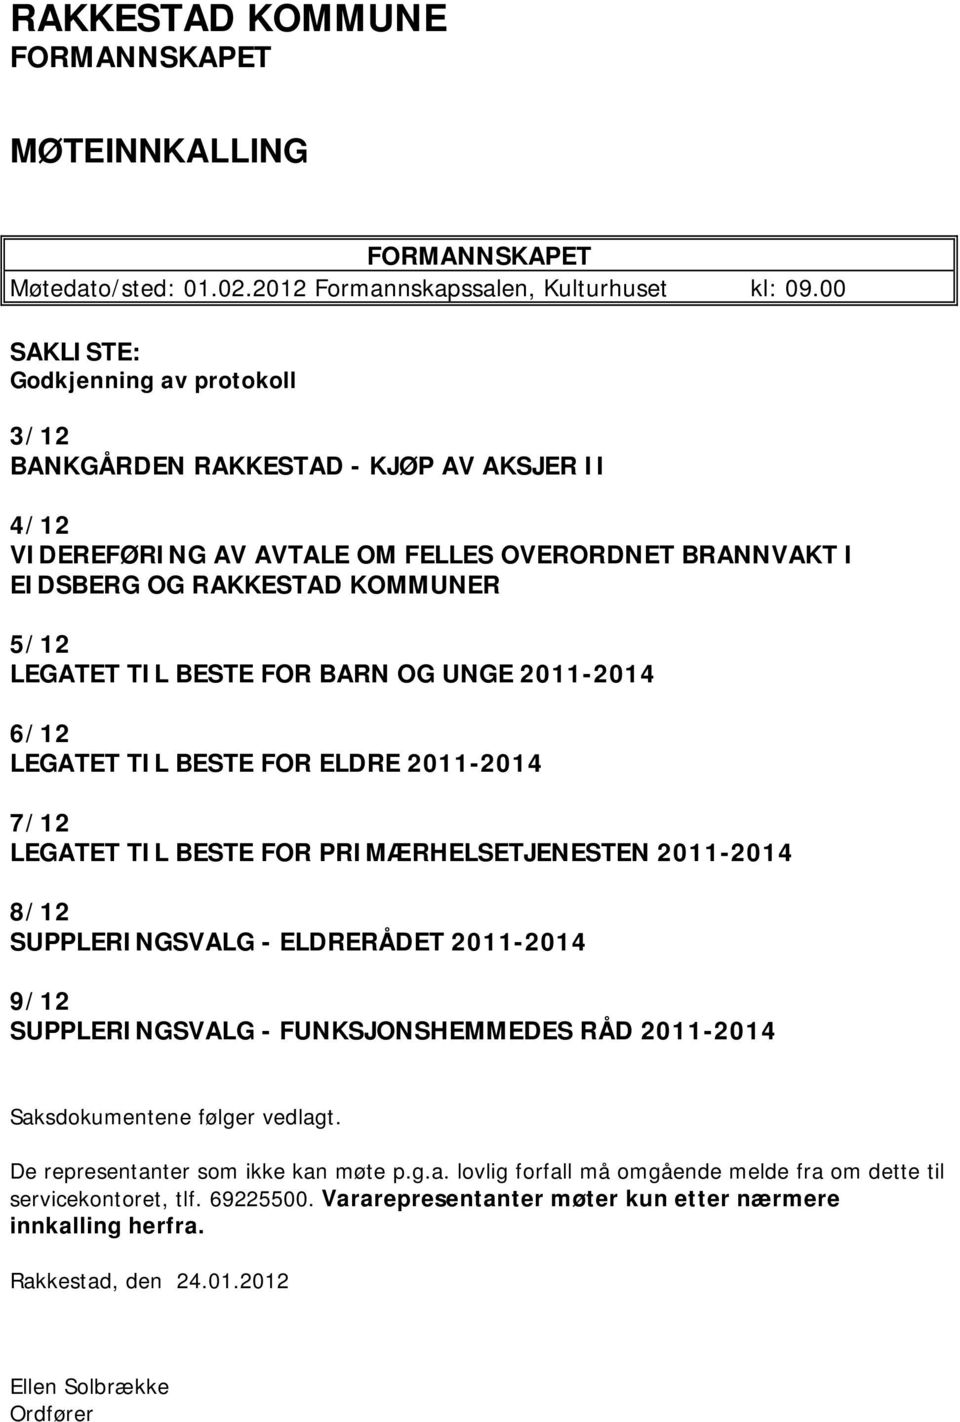 FOR BARN OG UNGE 2011-2014 6/12 LEGATET TIL BESTE FOR ELDRE 2011-2014 7/12 LEGATET TIL BESTE FOR PRIMÆRHELSETJENESTEN 2011-2014 8/12 SUPPLERINGSVALG - ELDRERÅDET 2011-2014 9/12 SUPPLERINGSVALG -